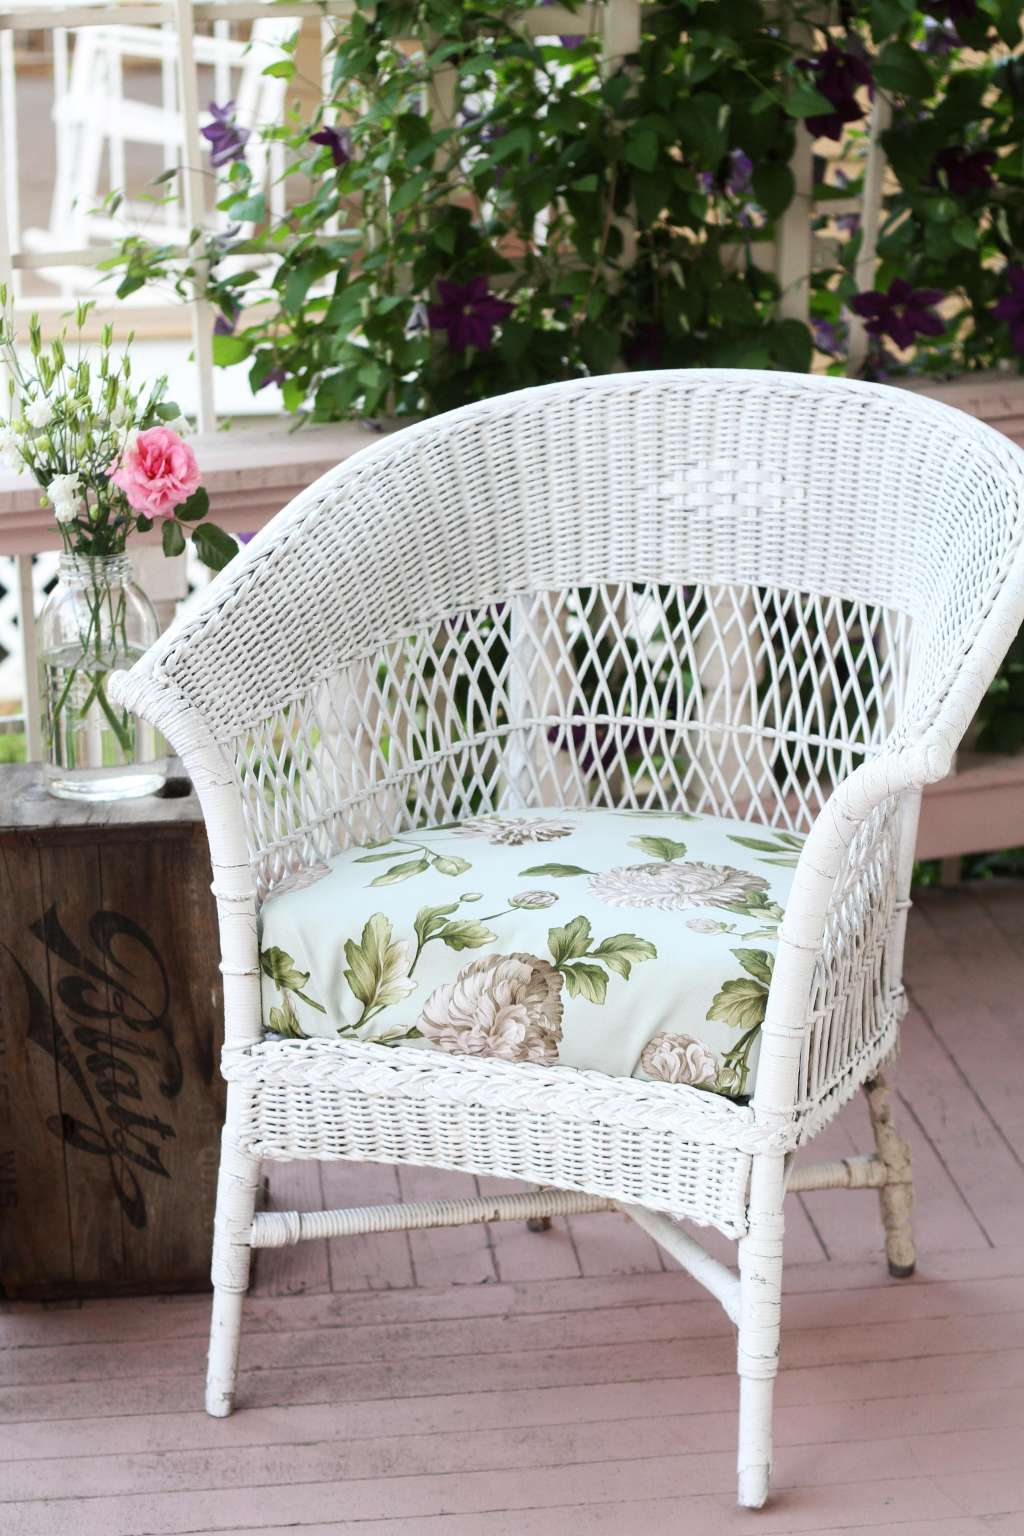 Tutorial: Quick & Easy Drawstring Seat Covers for Outdoor Furniture